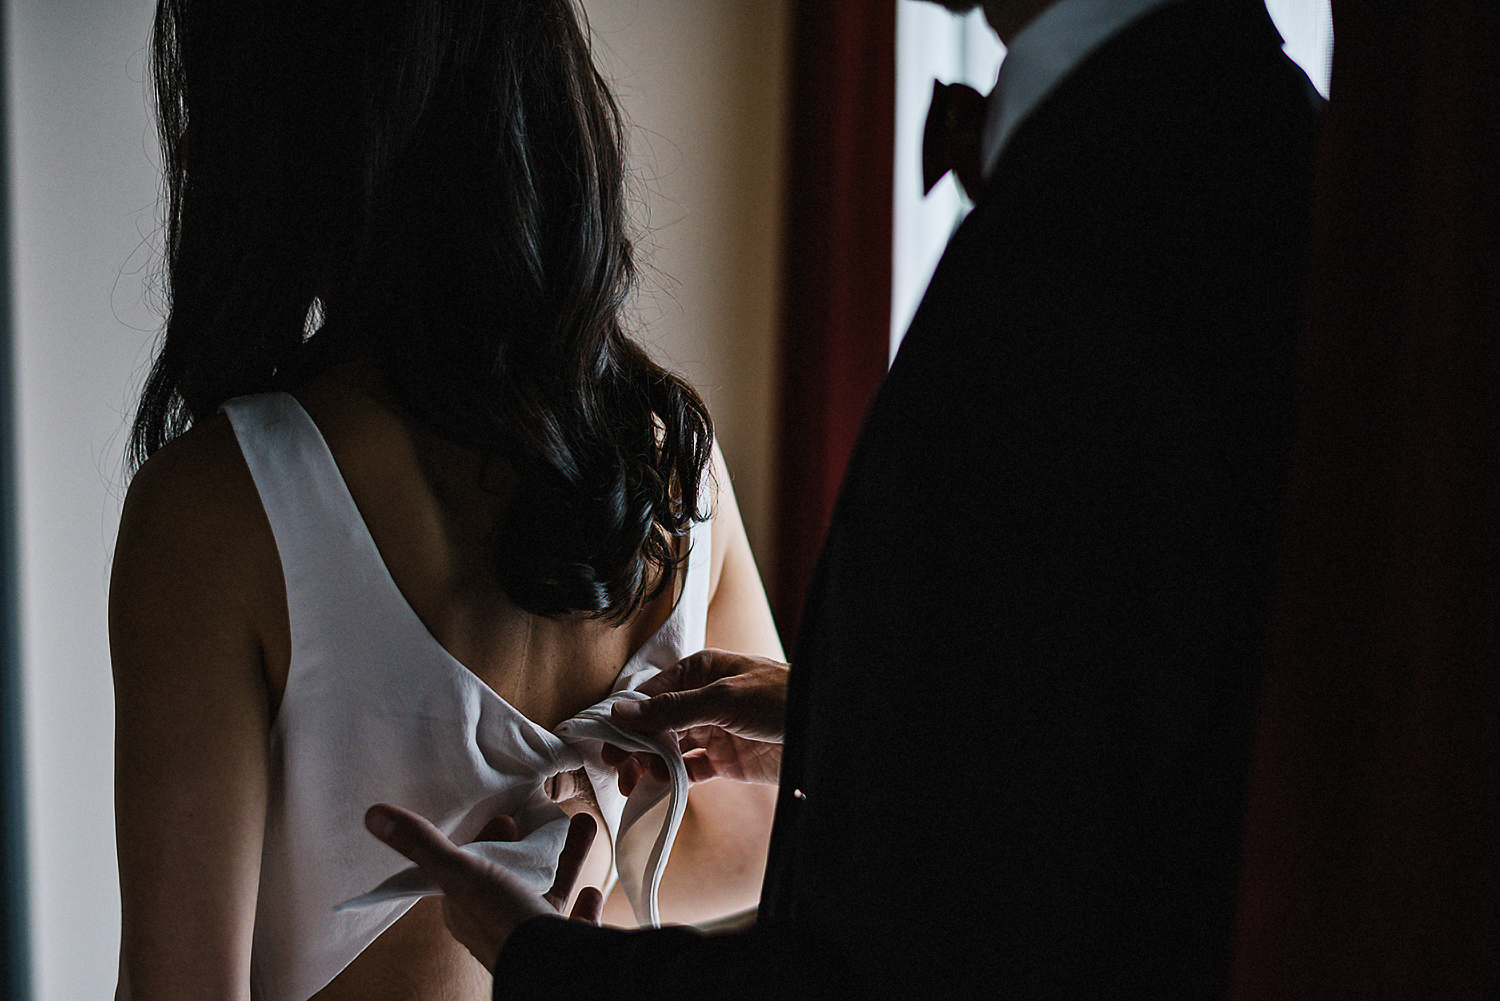 21-525-Best-Wedding-Photography-Toronto-Ontario-Canada-Photojournalistic-Genuine-Candid-Moments-Groom-Helping-Bride-Get-dressed.jpg